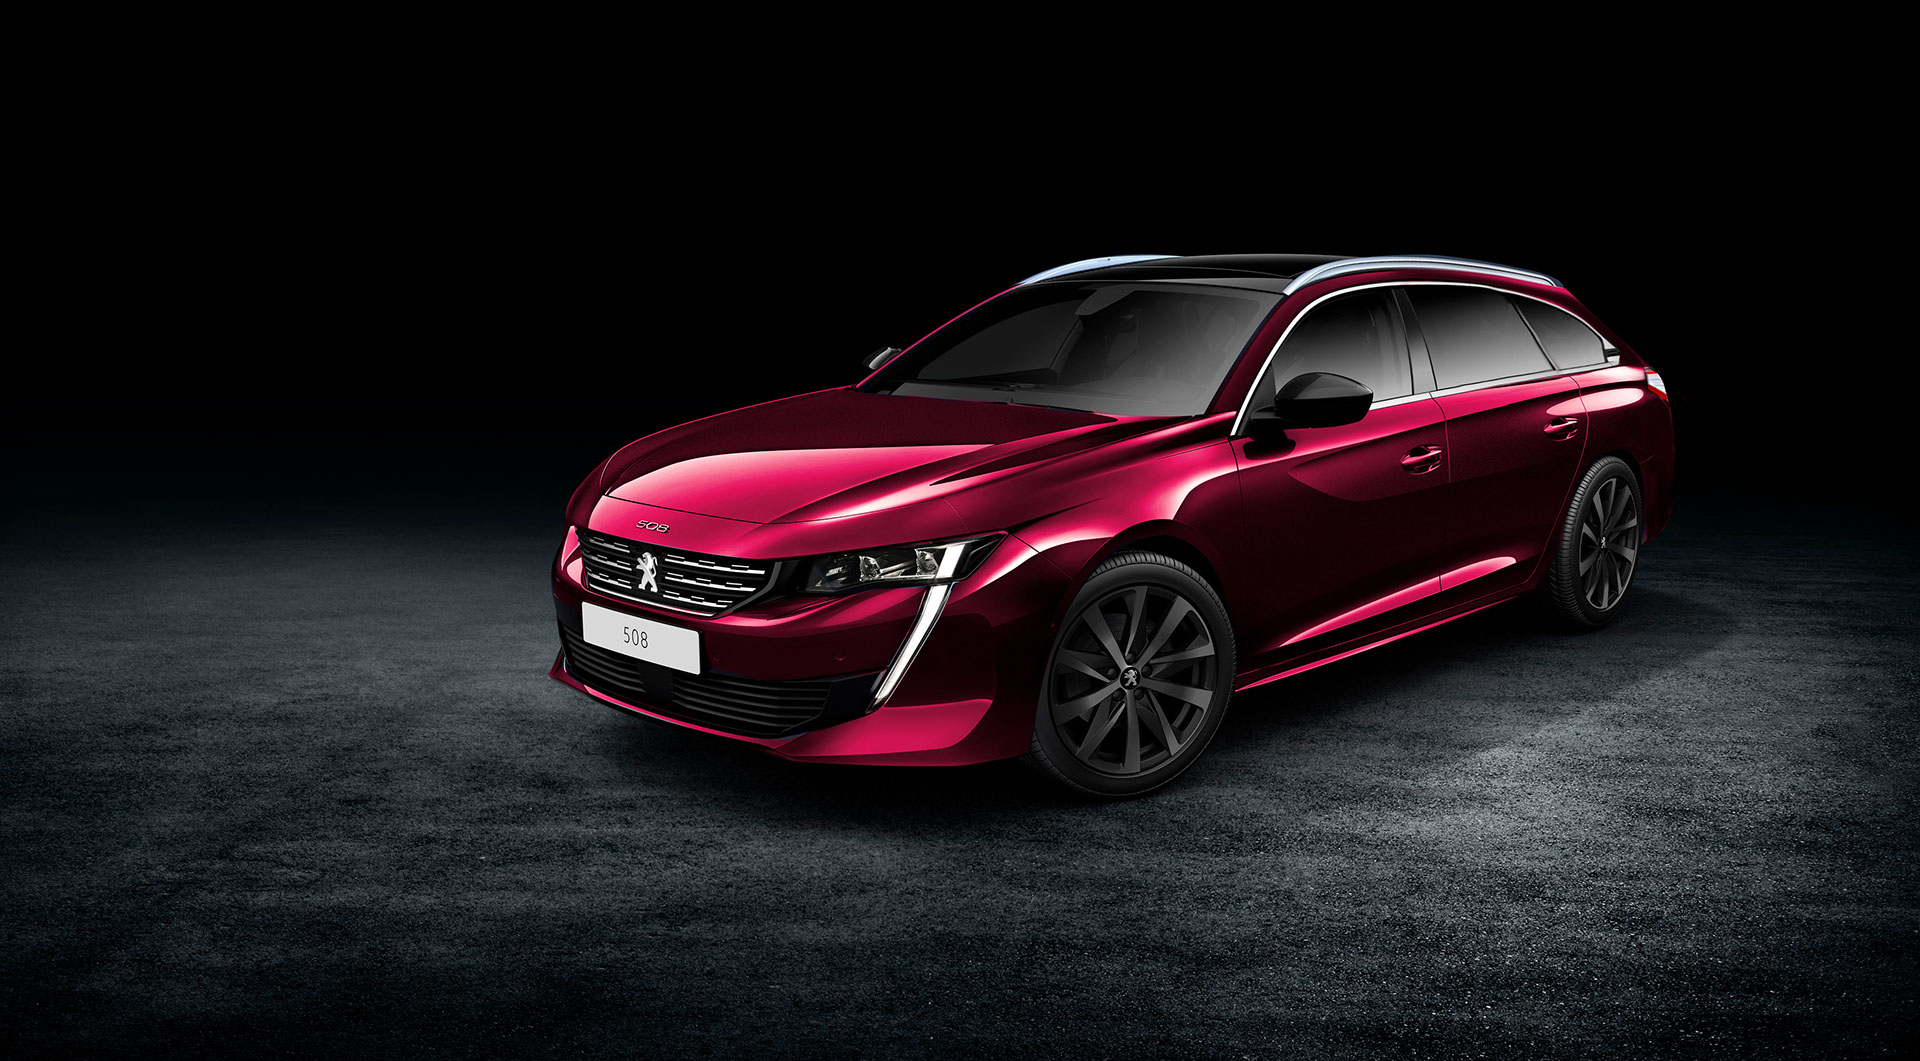 peugeot-508-all-new-sw-render-1